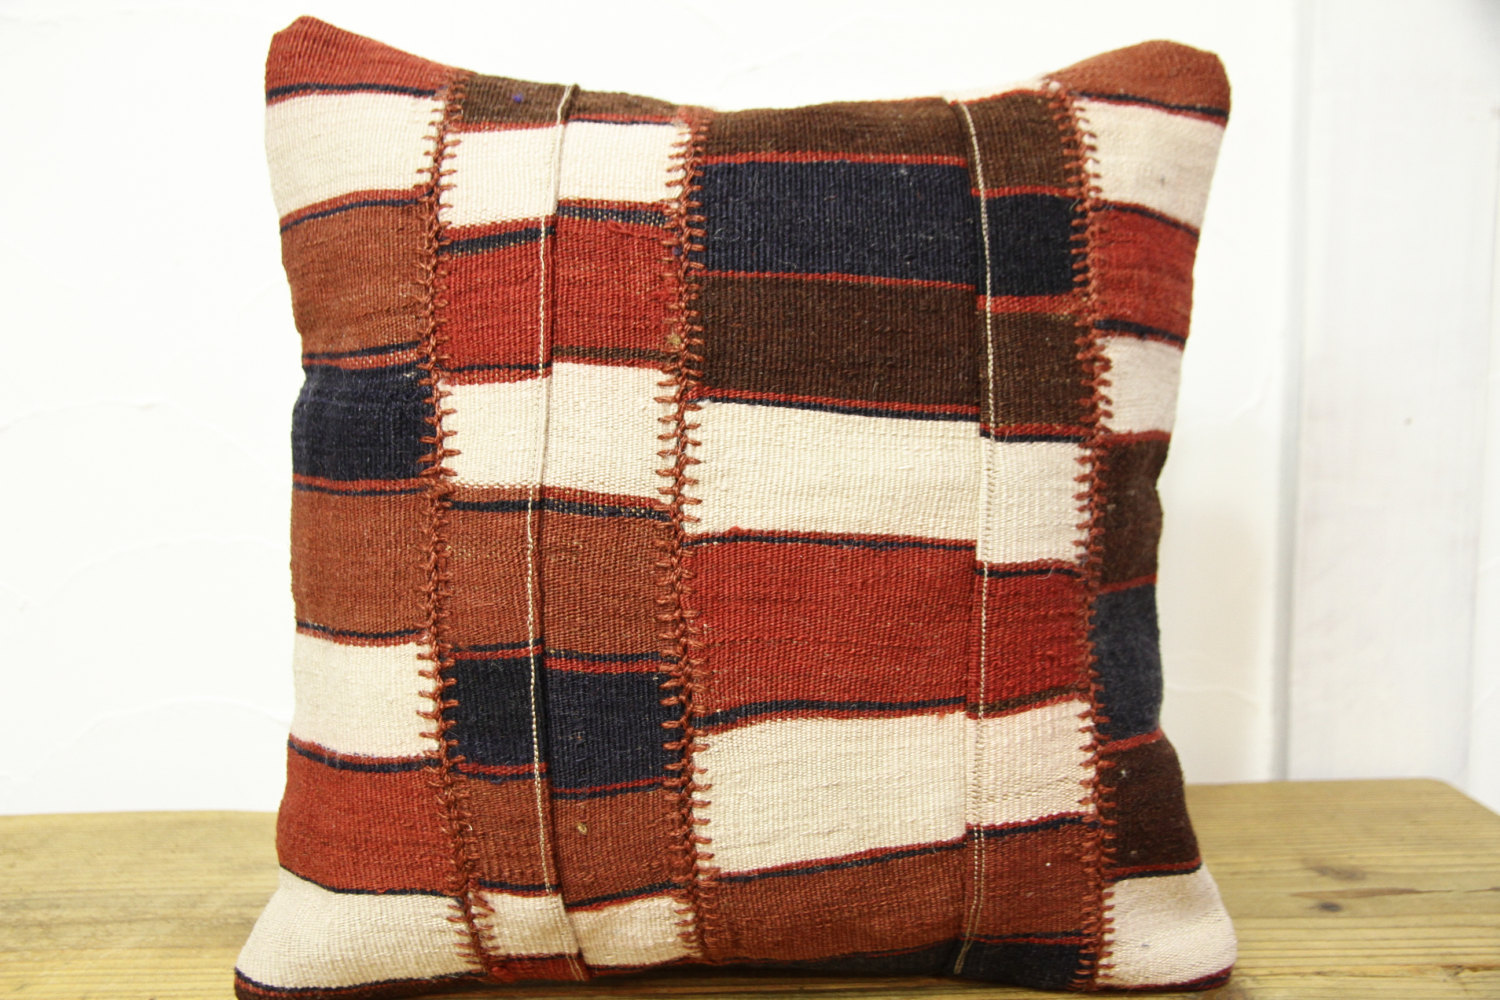 Kilim Pillows |16x16 | Decorative Pillows | 452 | Accent Pillows turkish pillow